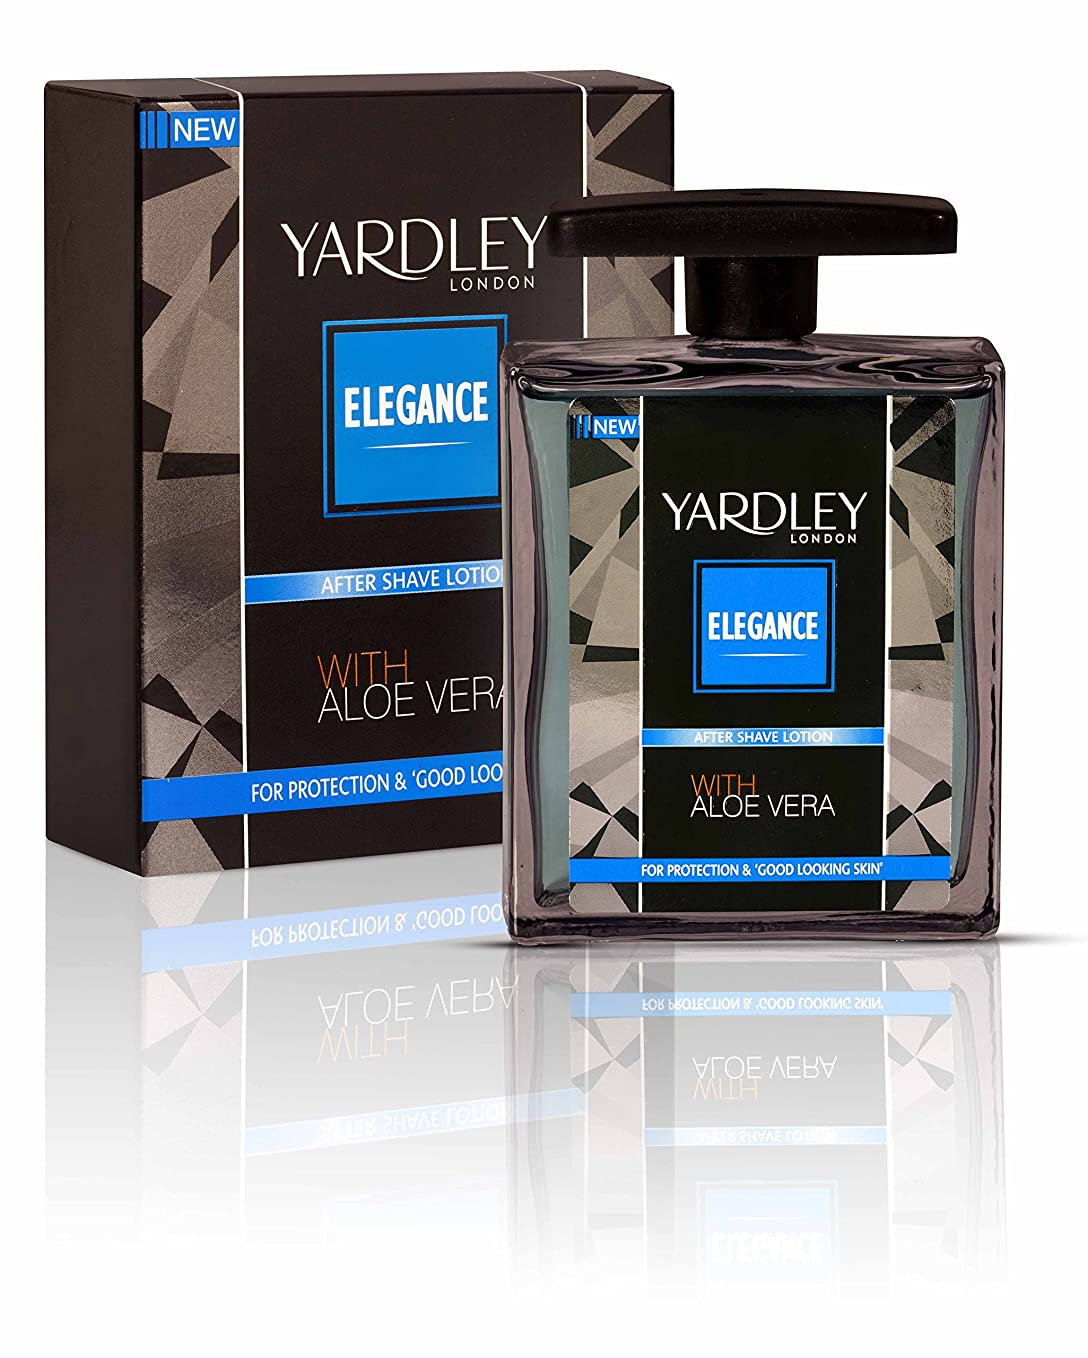 決定いたずら閉じるYardley London Elegance After Shave Lotion With Aloe Vera 50ml